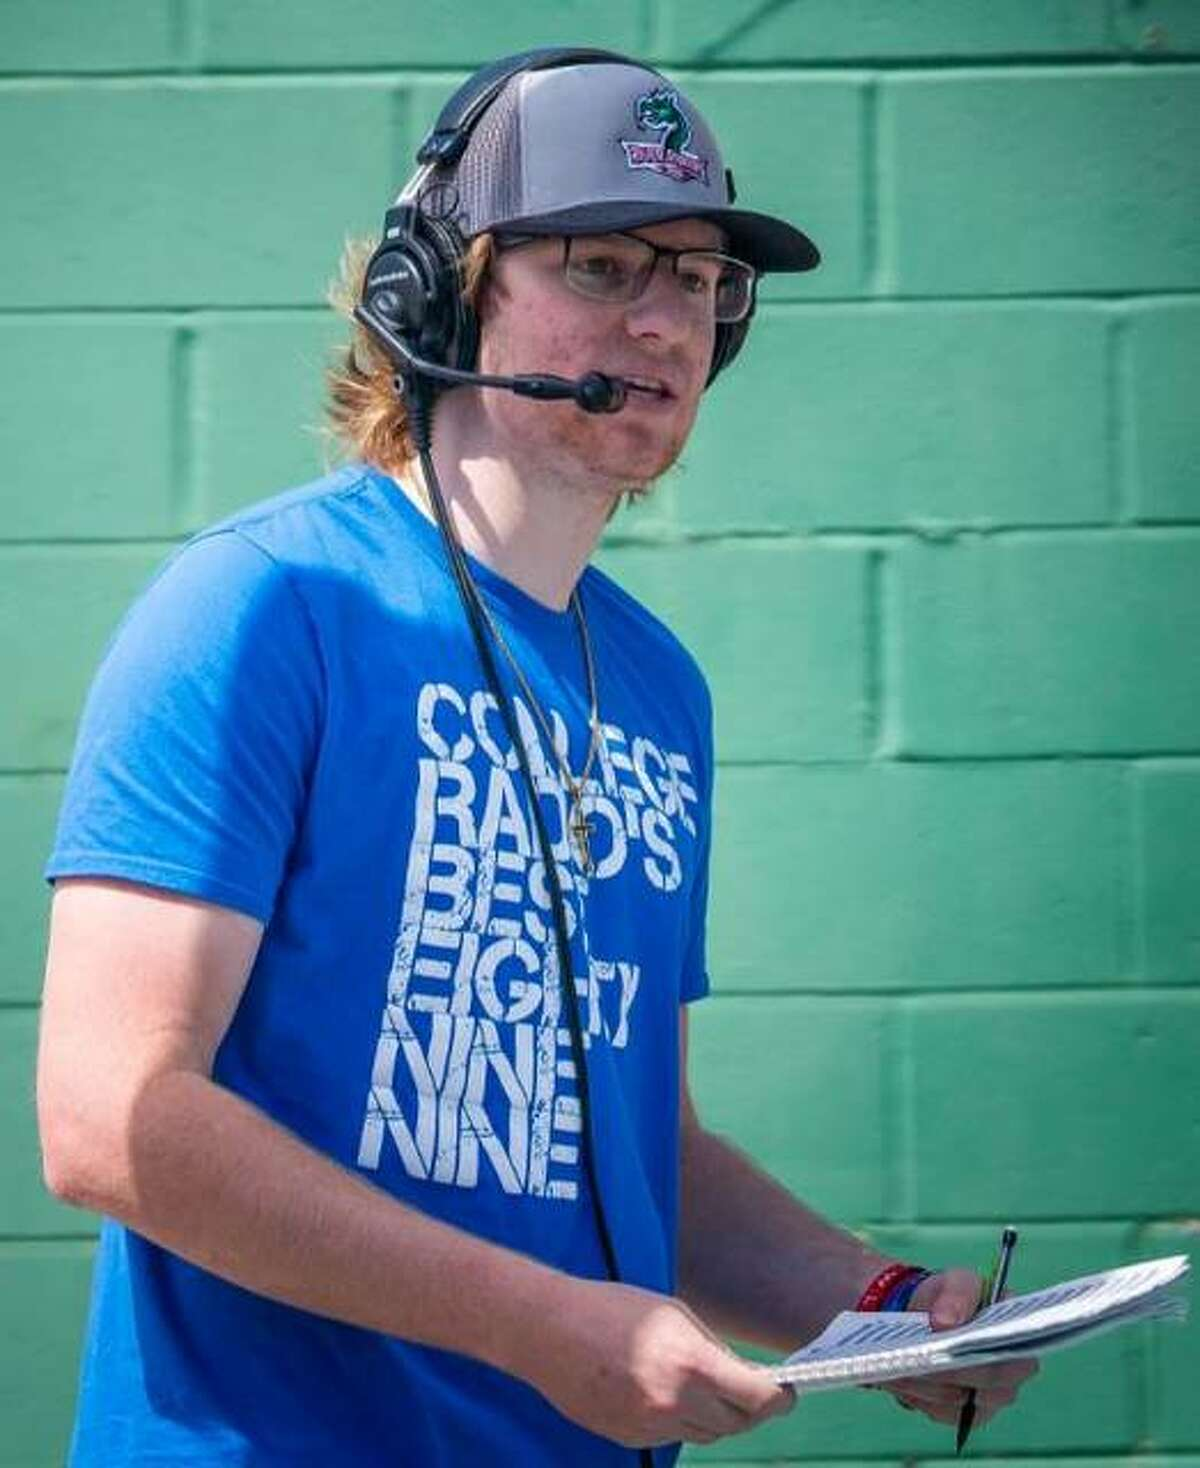 Ethan Hannaford, who broadcast Lewis and Clark Community College sports for WLCA 89.9-FM, is now heading to Lindenwood University to pursue a mass communications degree.